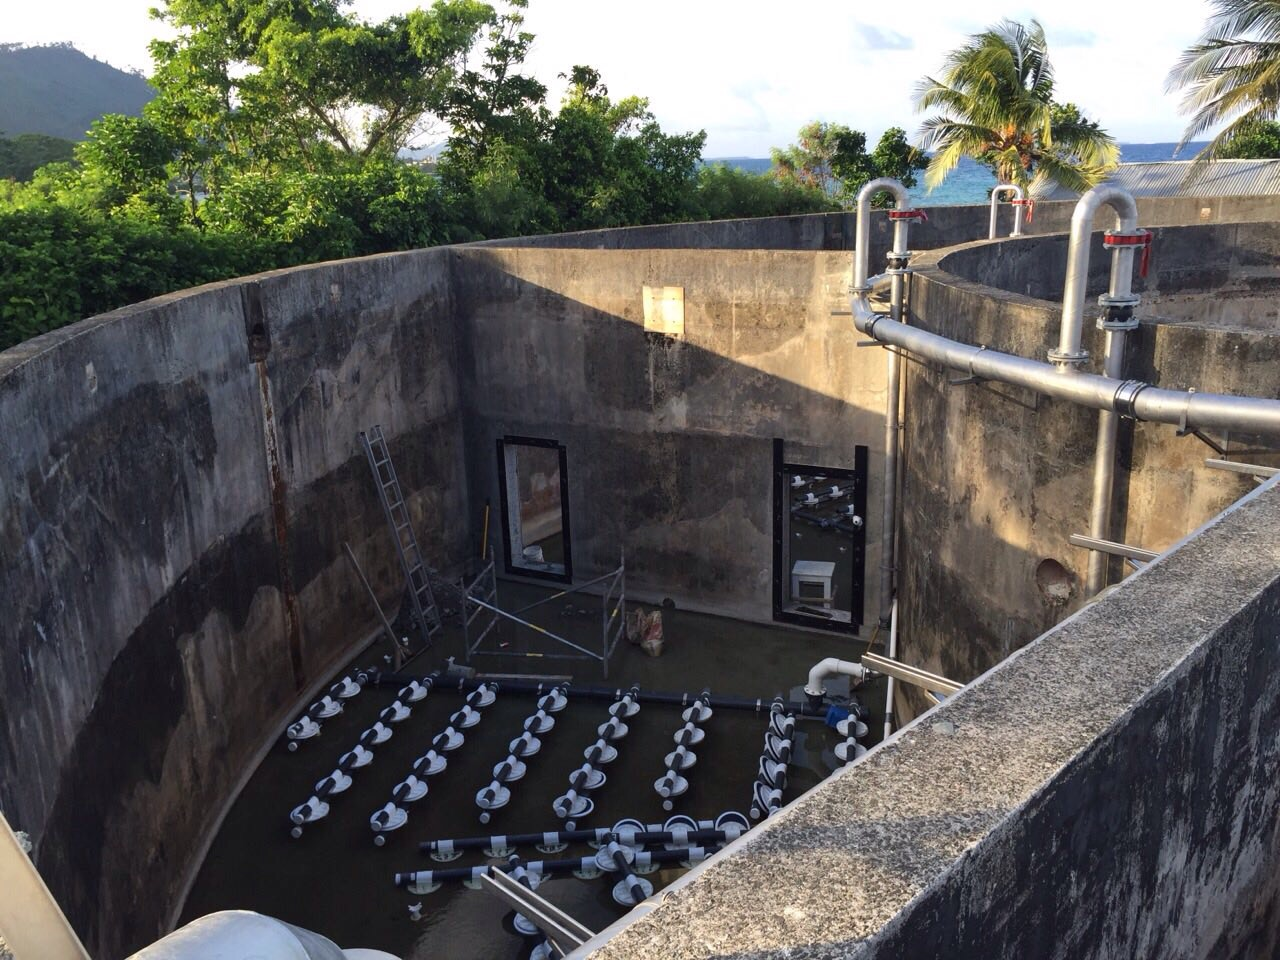 Weno WWTP Upgrade - Air Diffuser System Under Construction